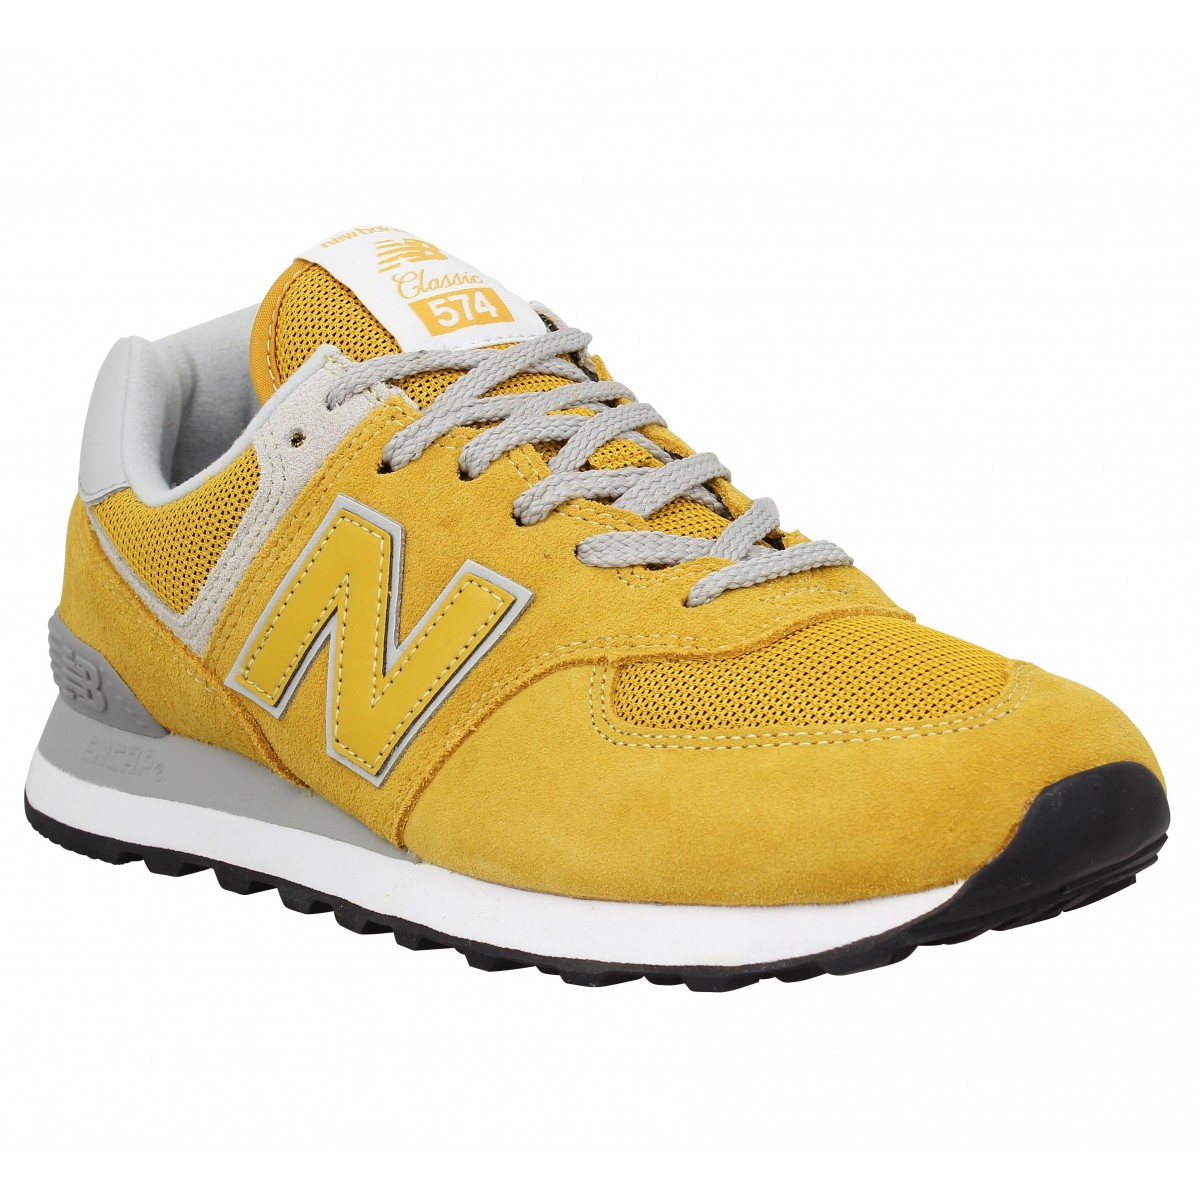 New Balance Marque 574 Velours Toile...